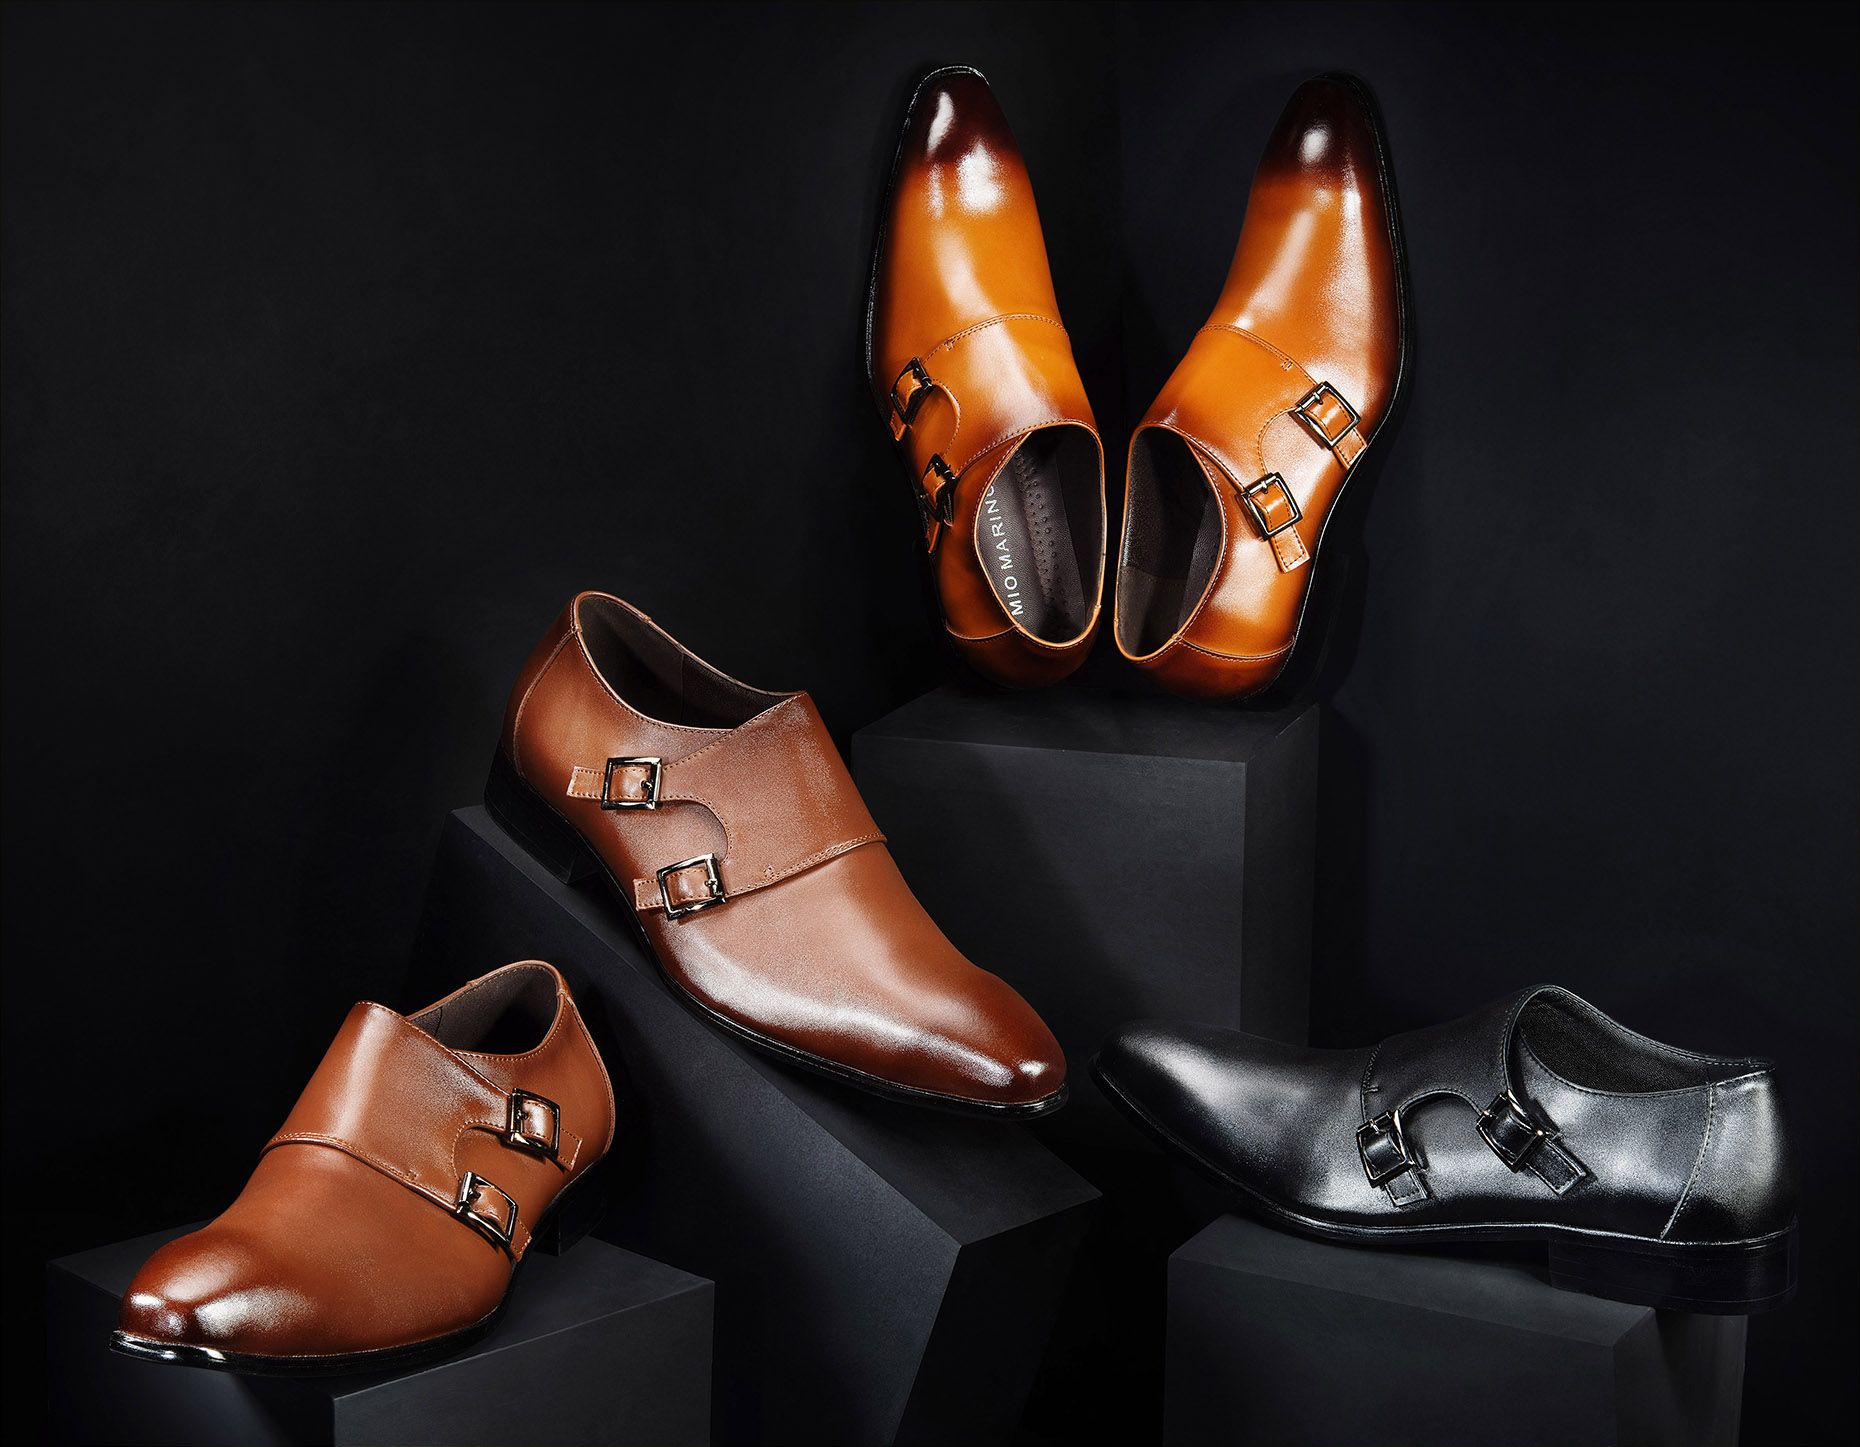 New-yoek-still-life-off-figure-fashion-studio-marino-dress-shoes